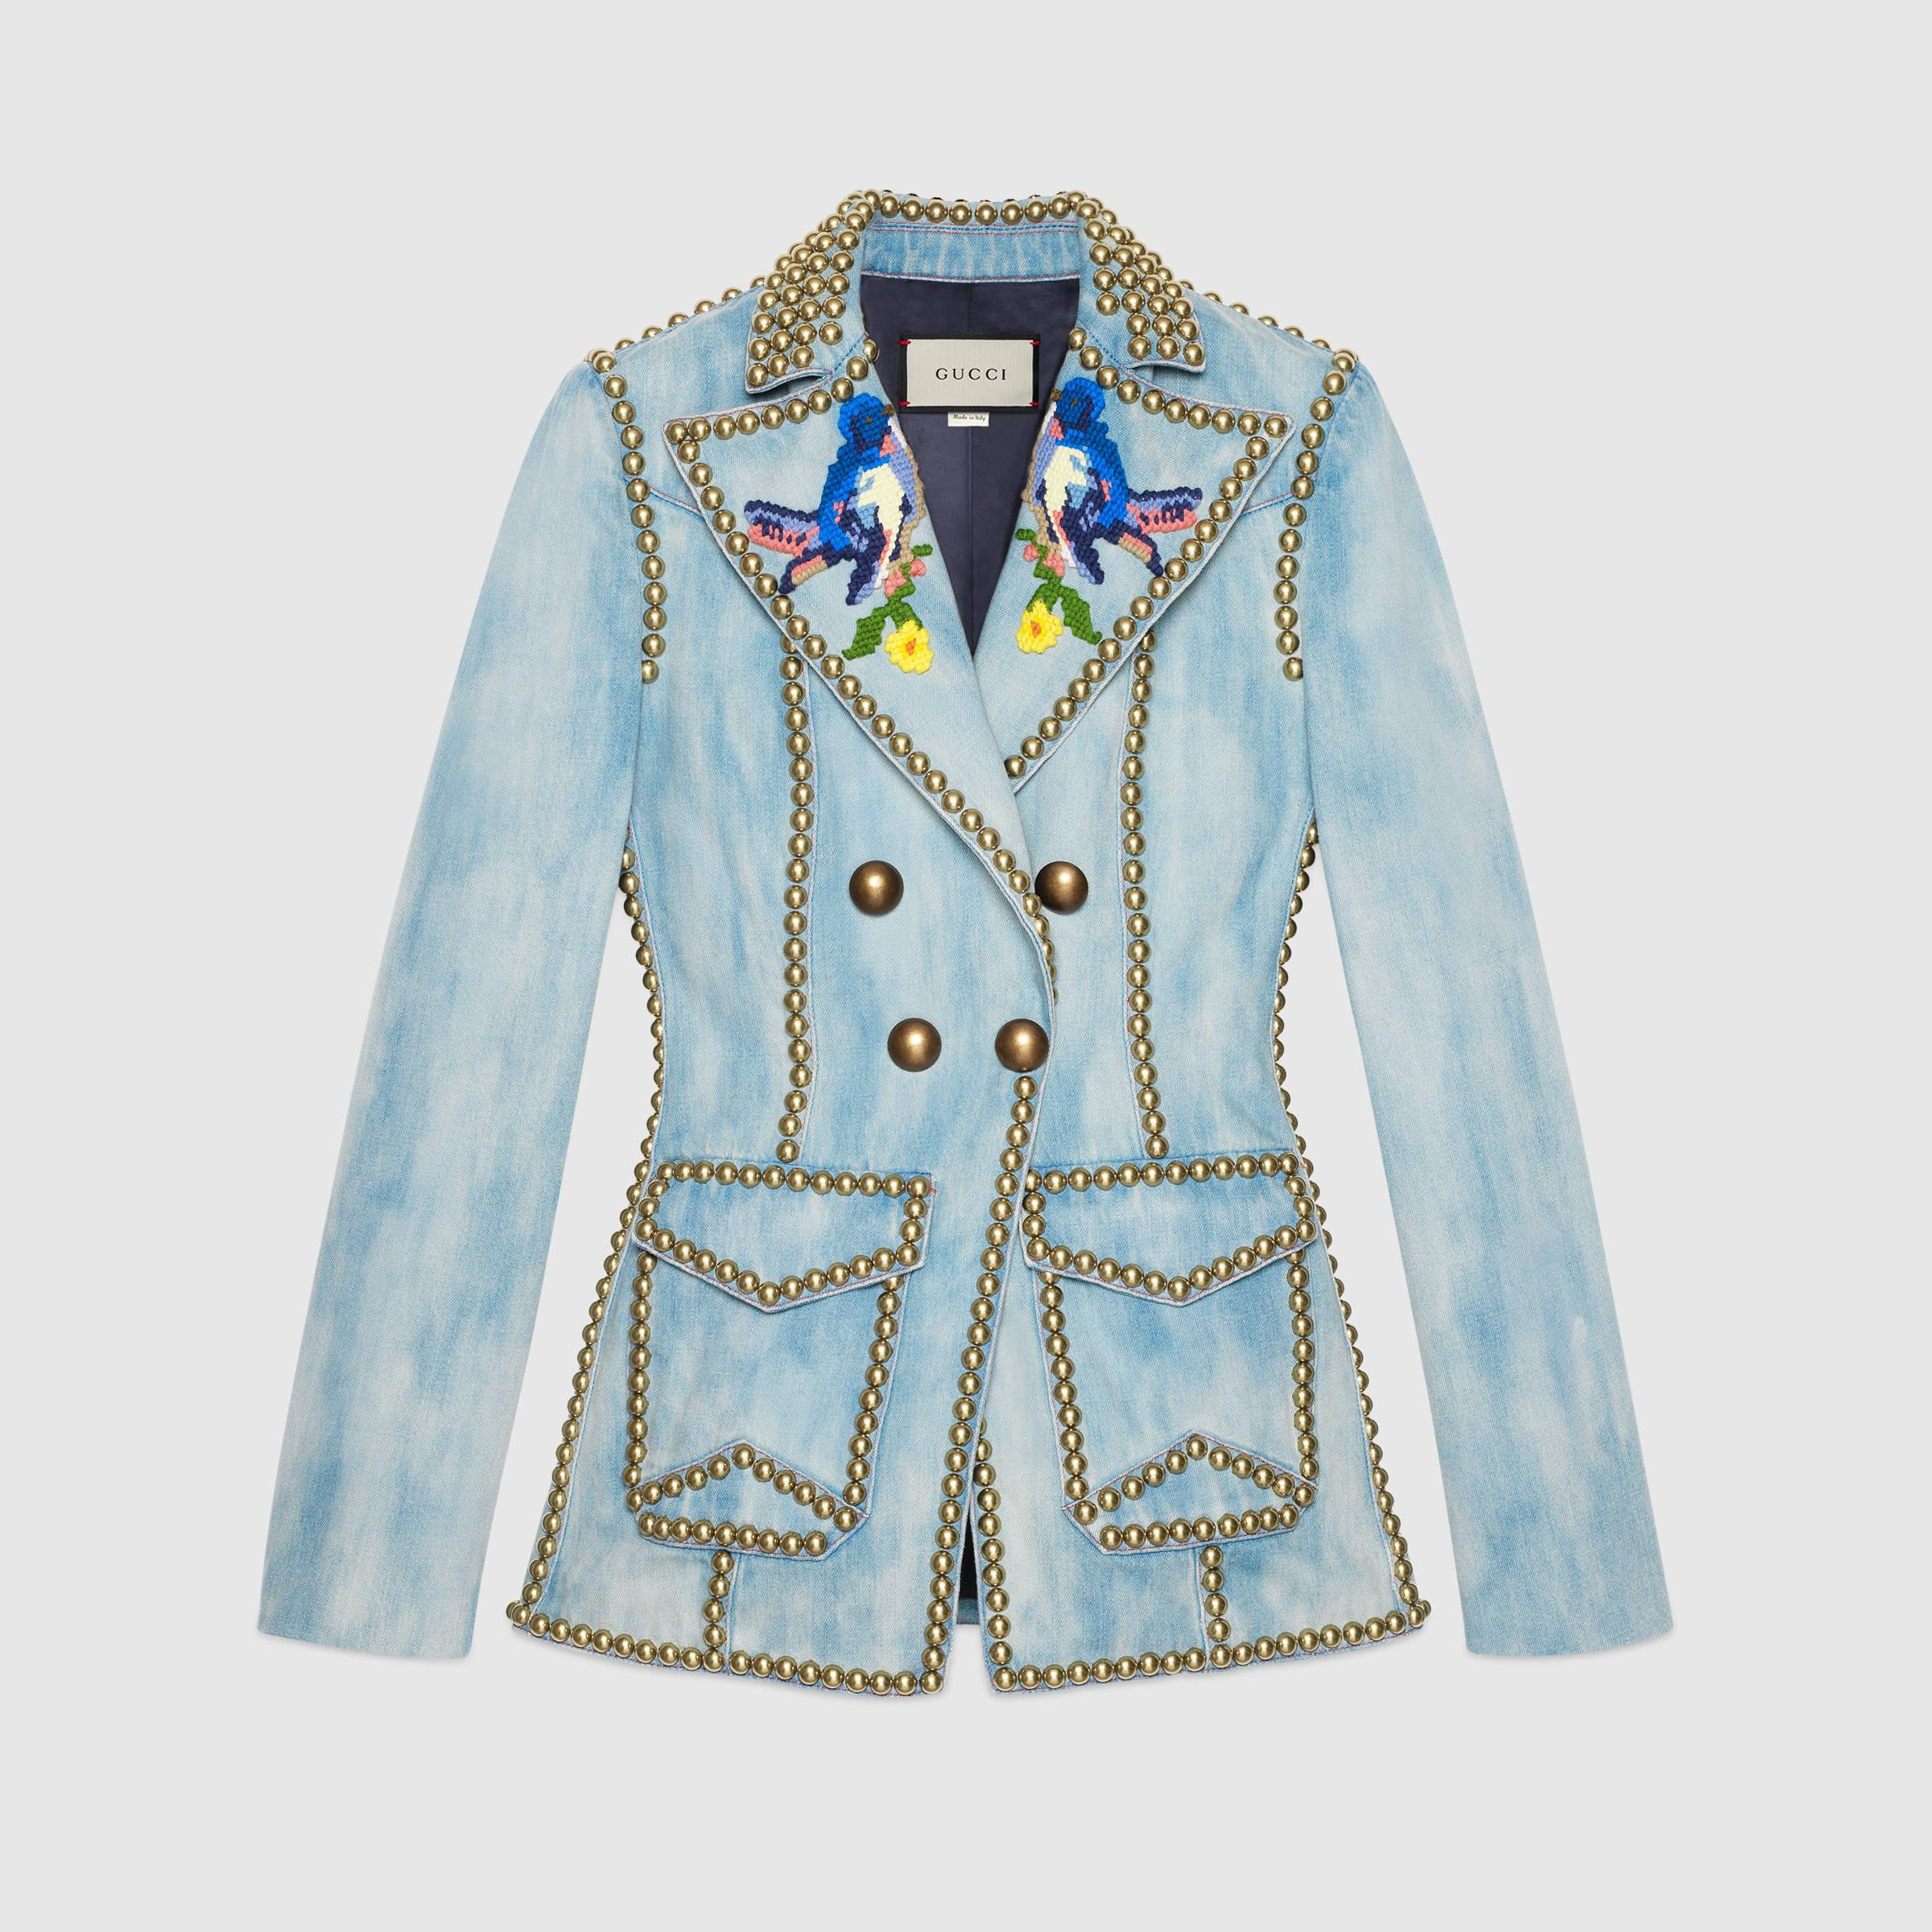 Lyst gucci embroidered denim jacket with studs in blue for Dress shirt studs uk